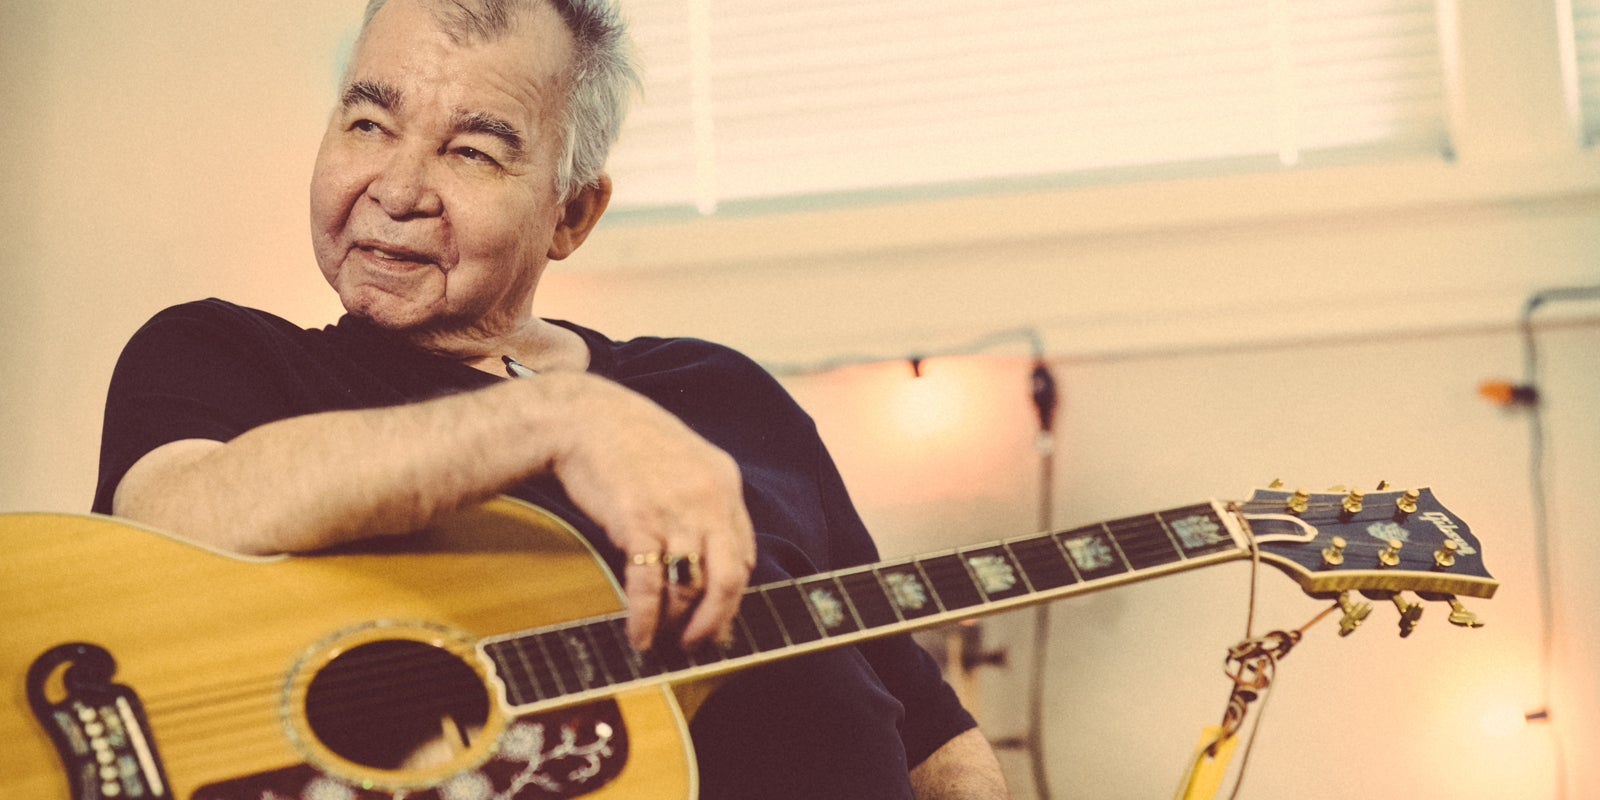 JohnPrine - Wide.jpg